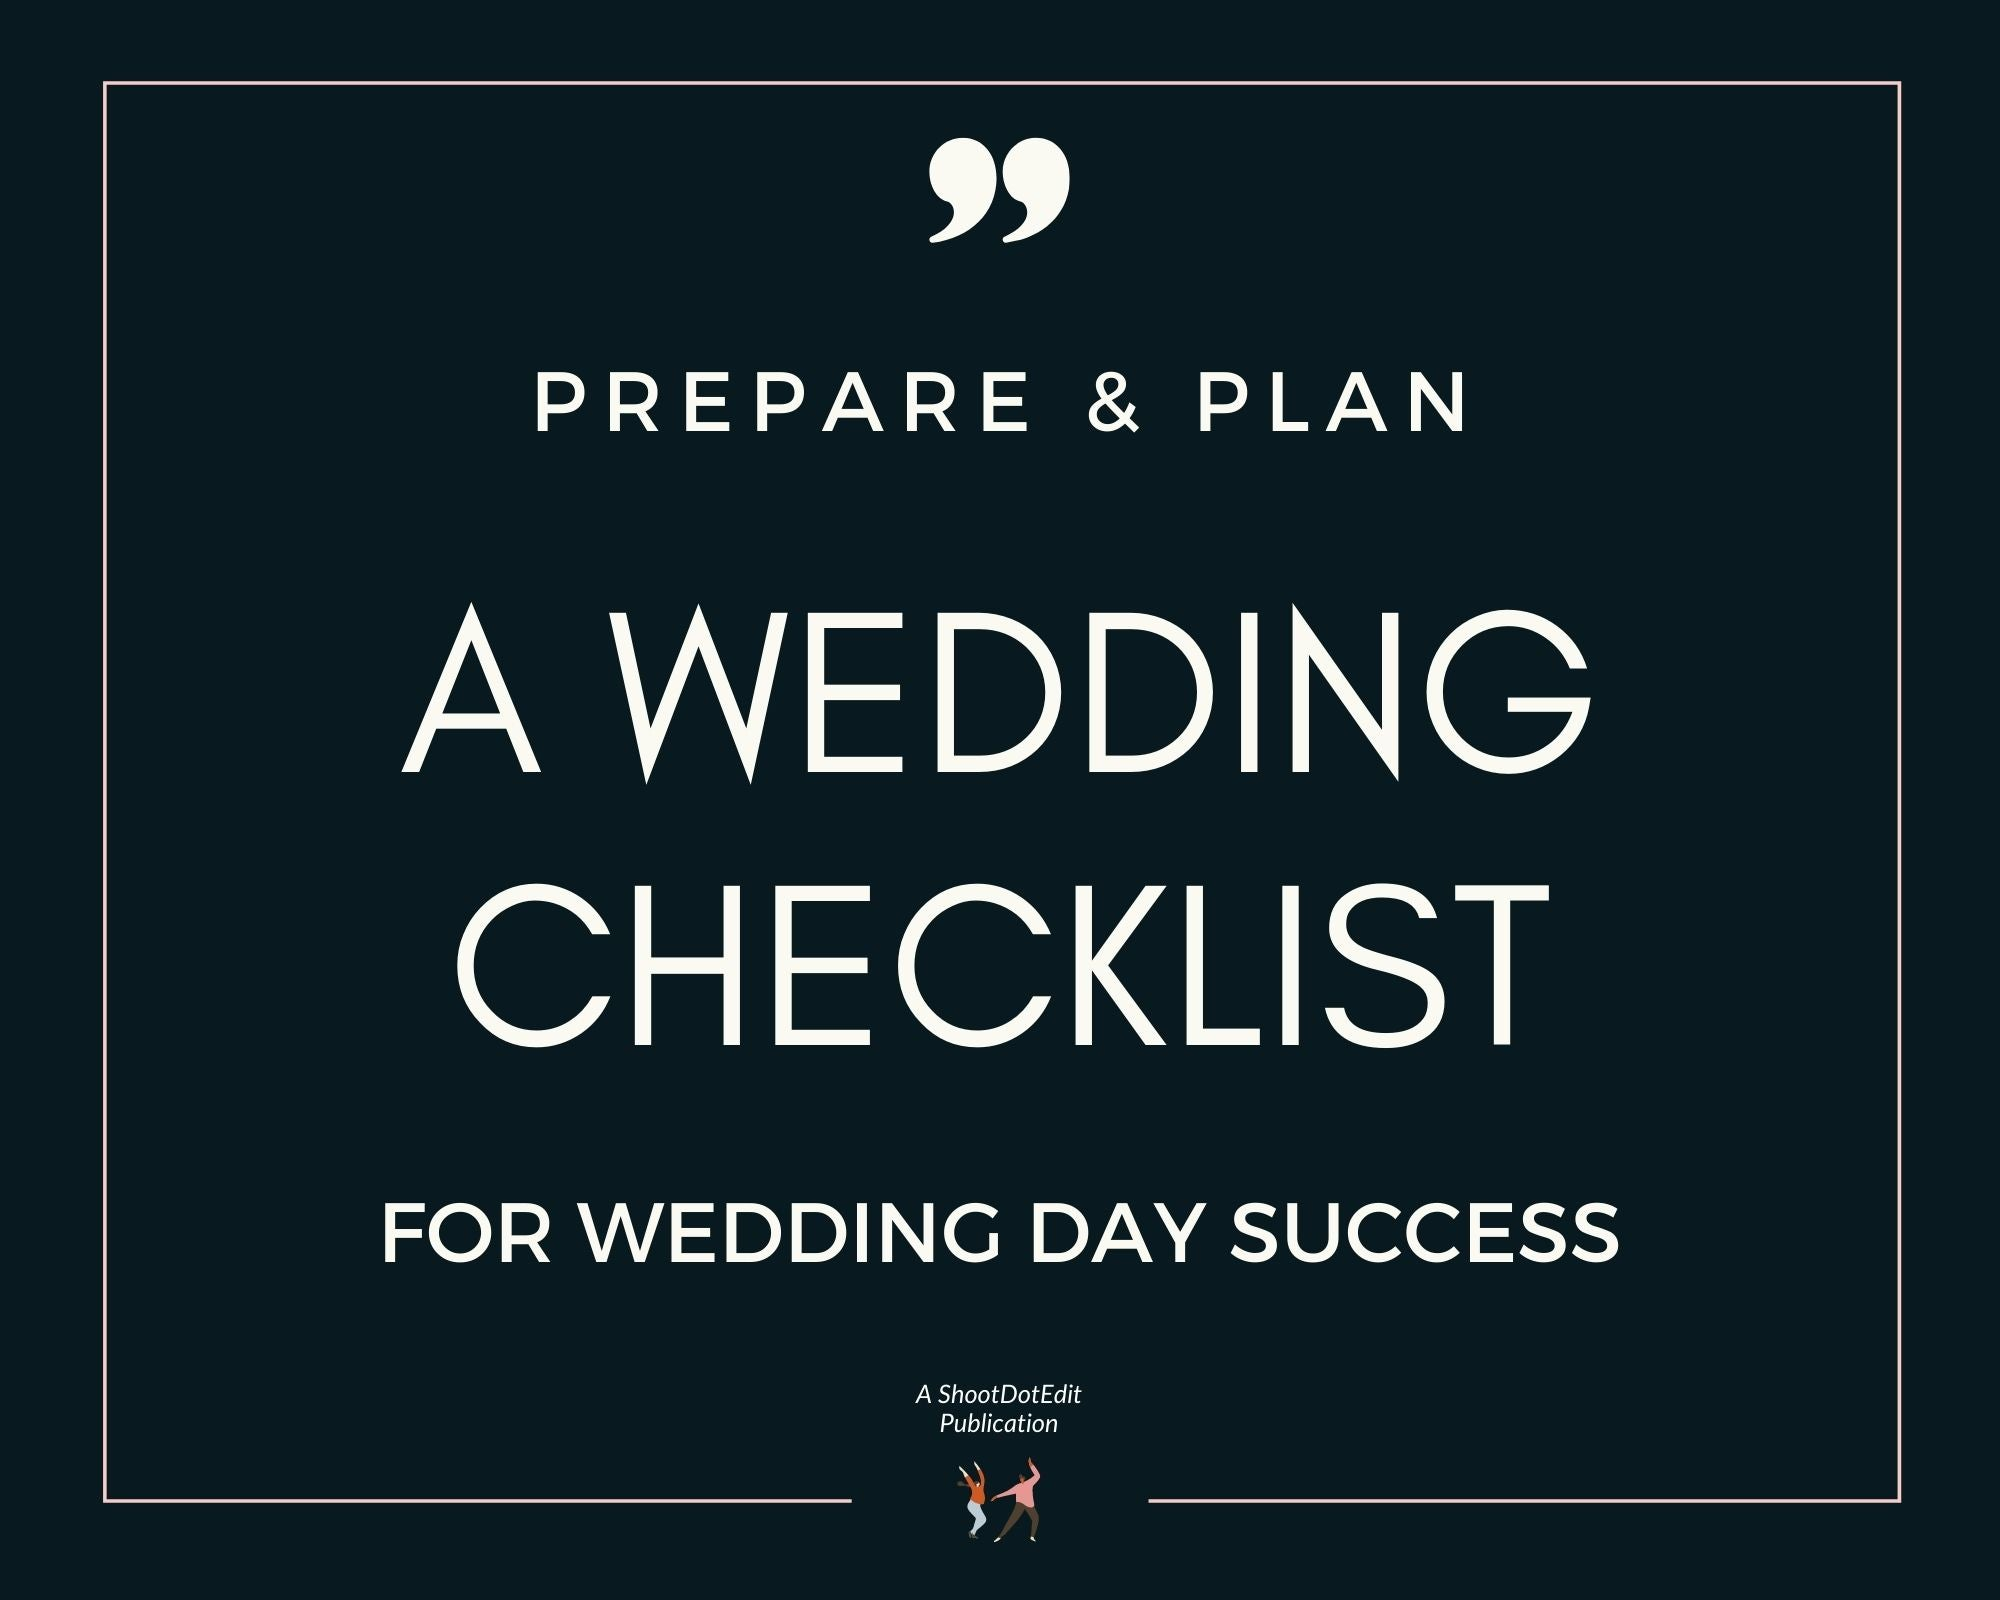 Infographic stating prepare and plan a wedding checklist for wedding day success